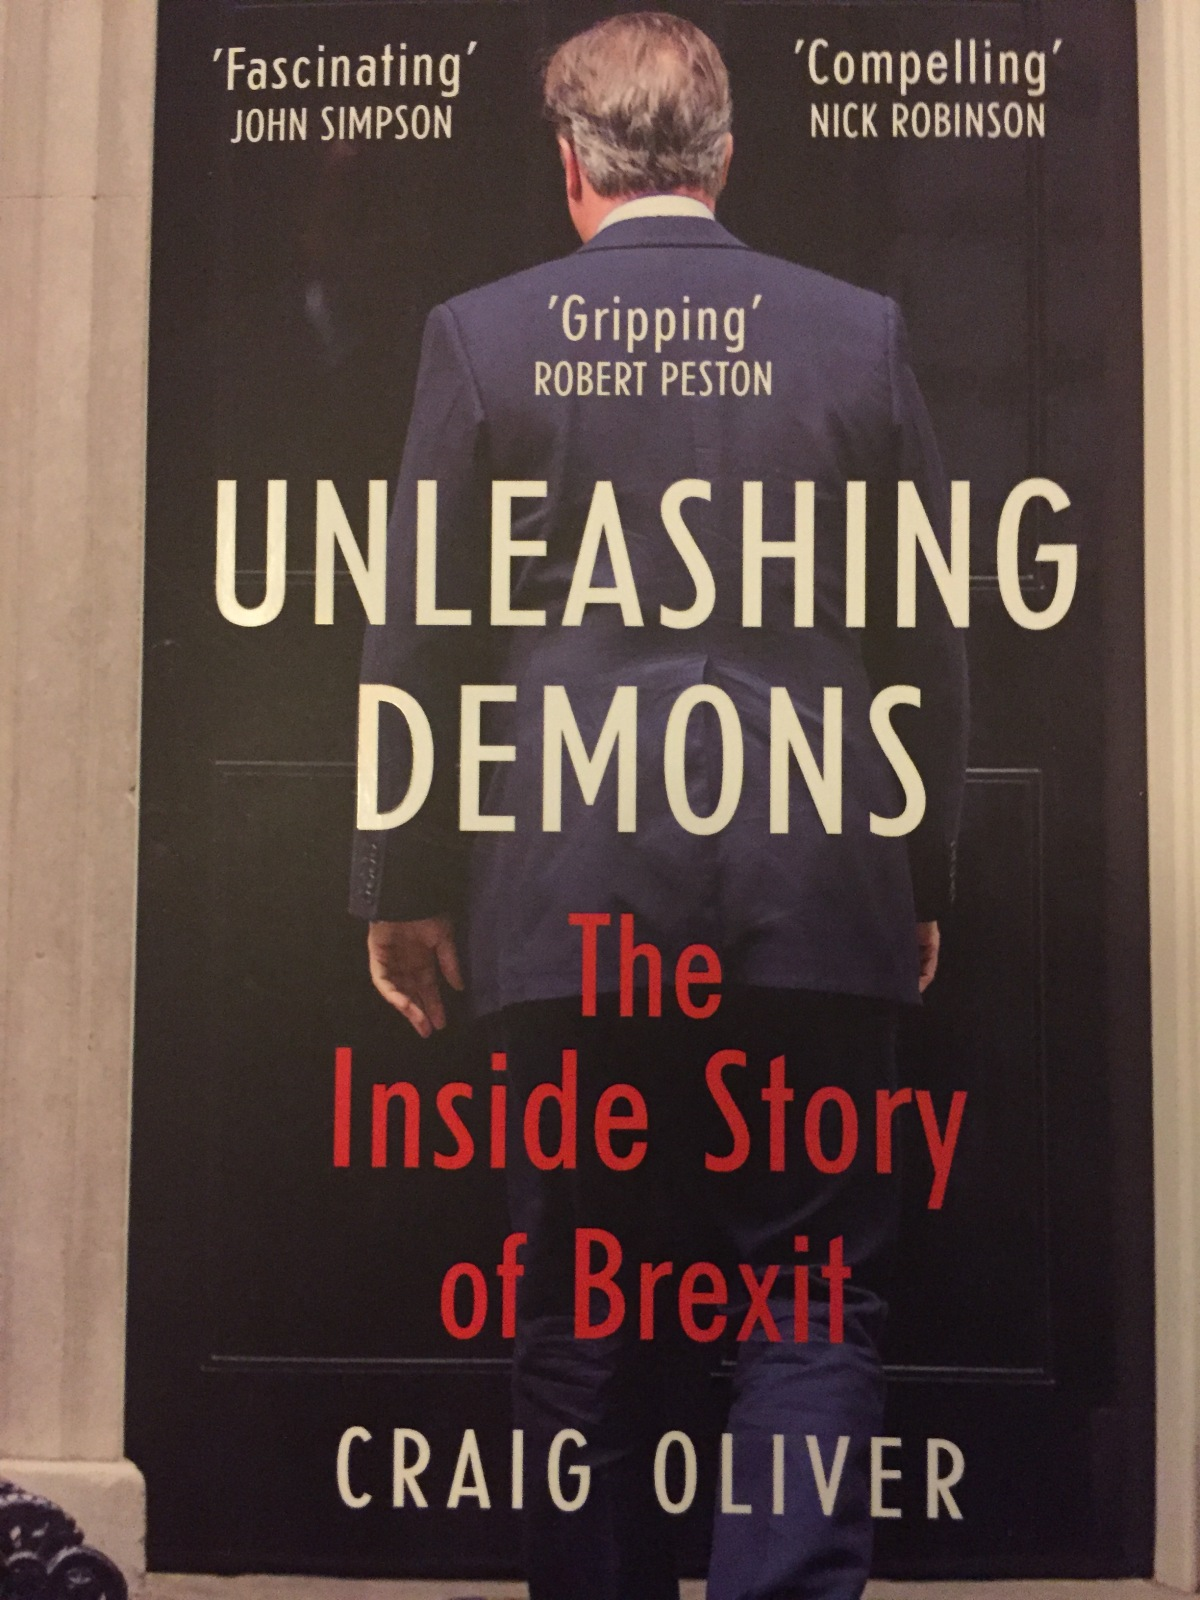 Craig Oliver's Unleashing Demons – not as bad as you might haveheard